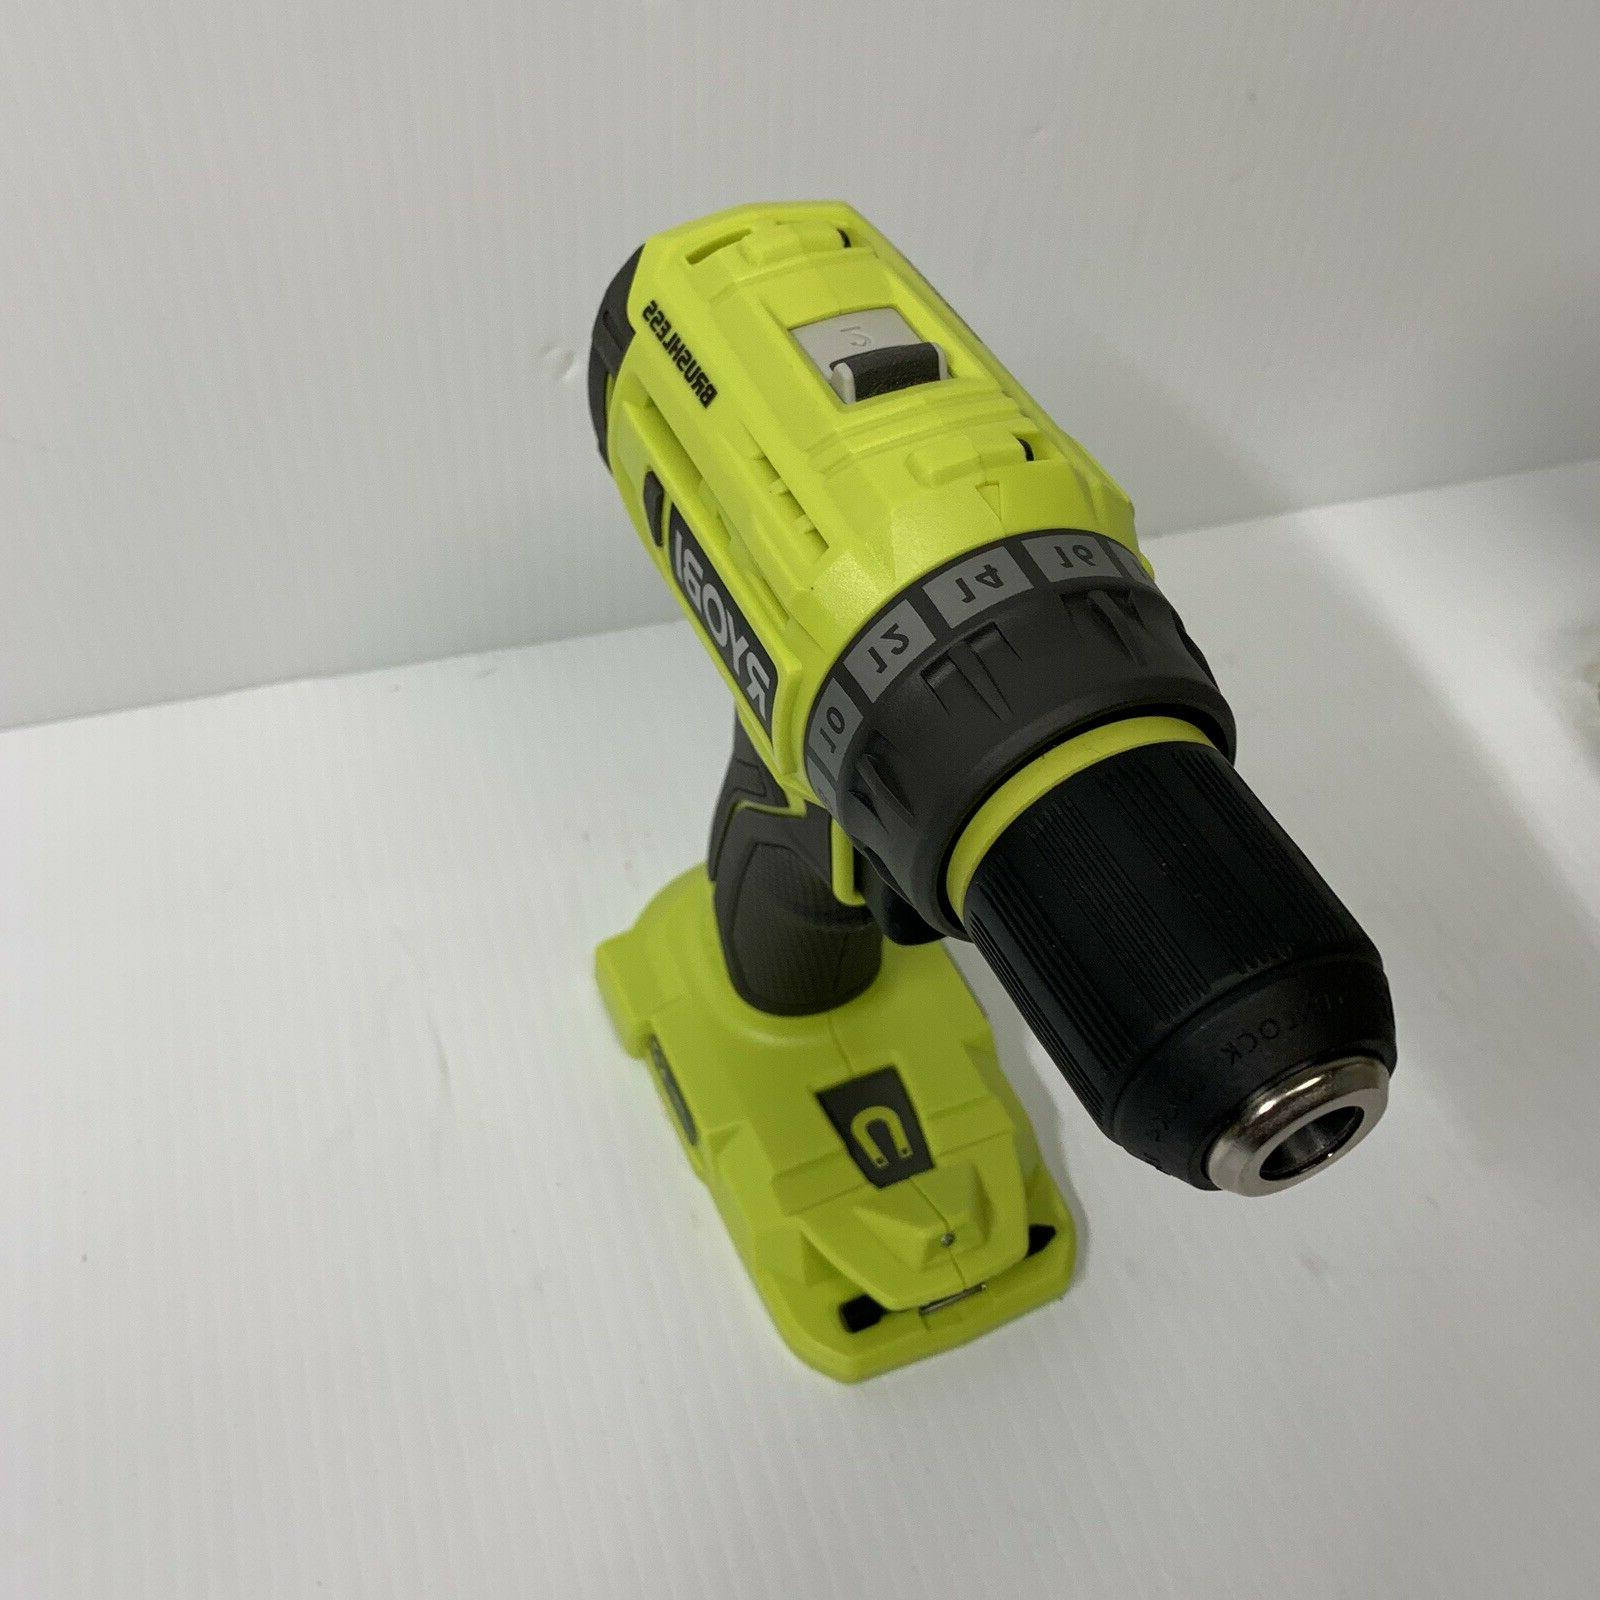 NEW ONE+ Brushless Drill Driver